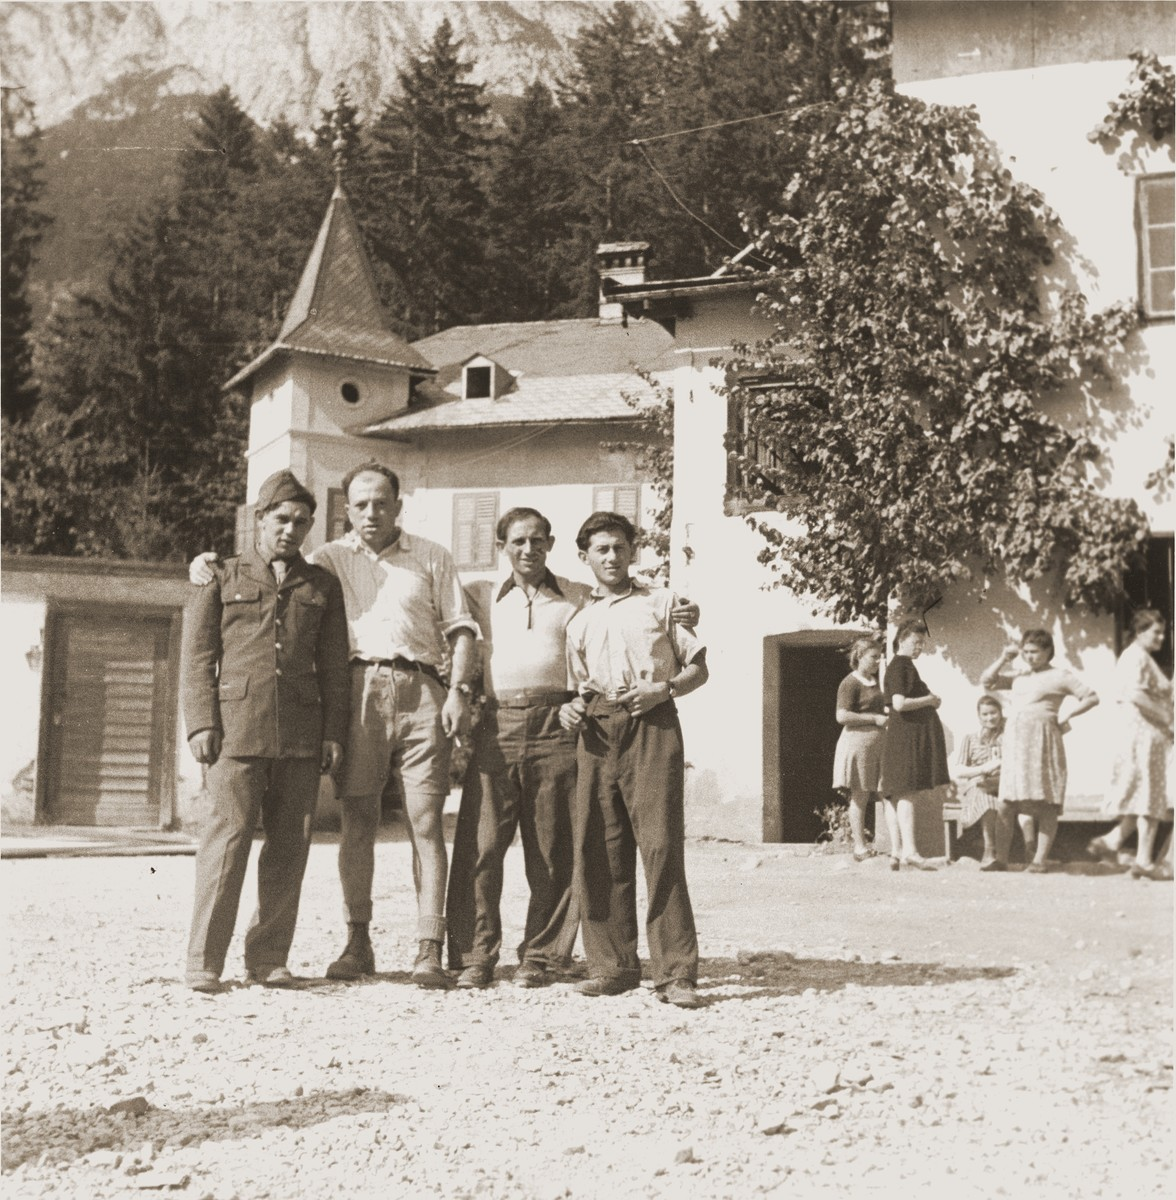 Four Bricha guides pose in the Gnadenwald transit camp, located in the Tyrol mountains, a stopping point on the Bricha route from Austria to Italy.